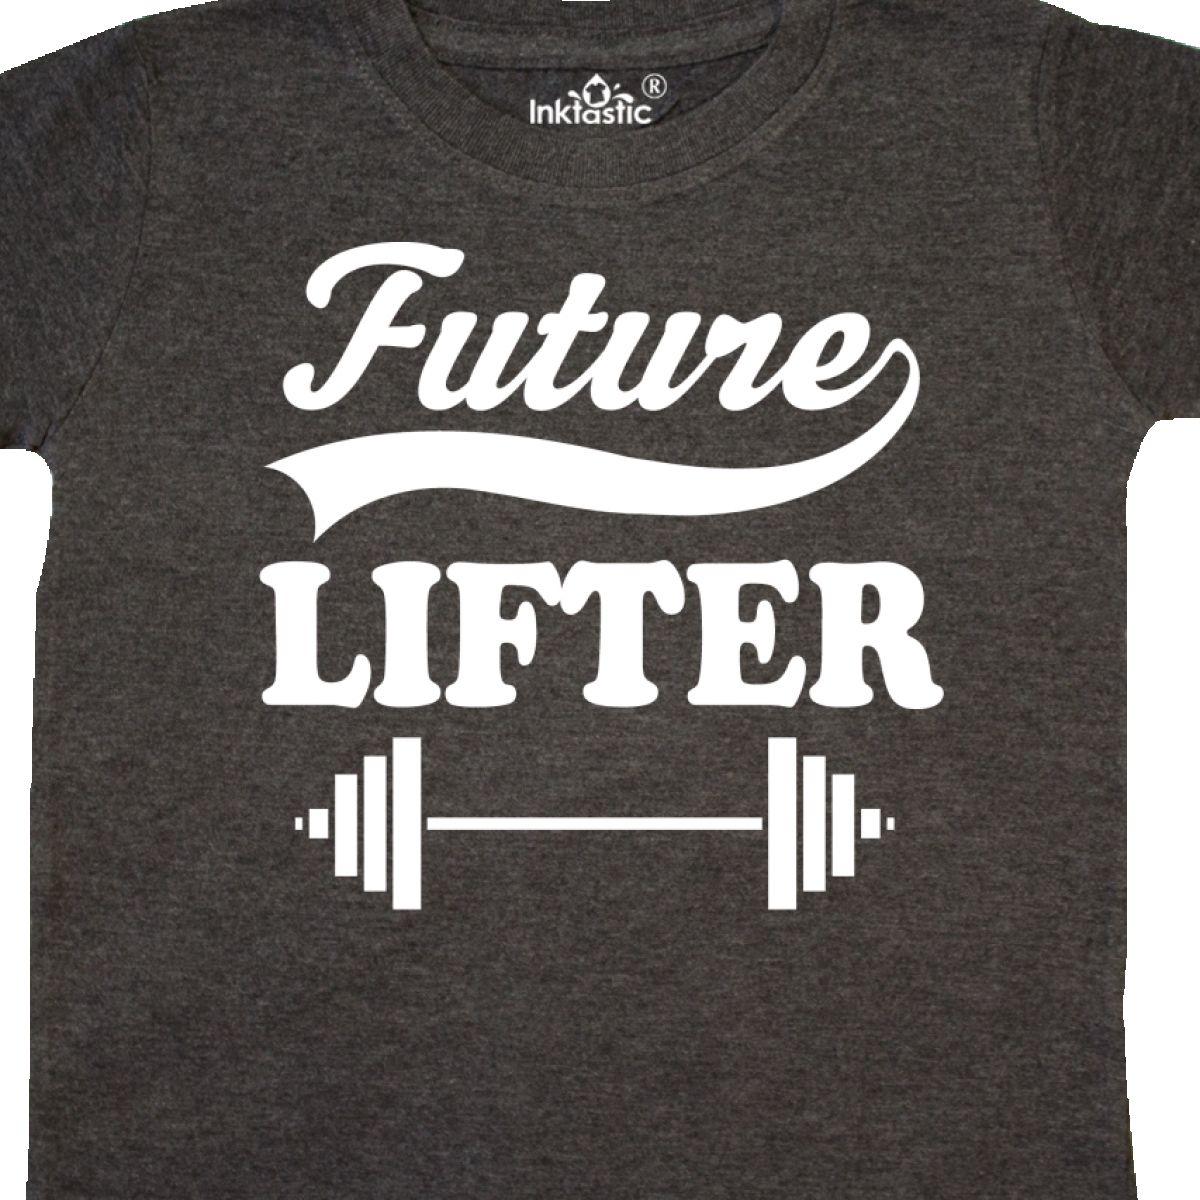 Inktastic-Future-Lifter-Weightlifting-Toddler-T-Shirt-Weightlifter-Lifting-Kids thumbnail 6